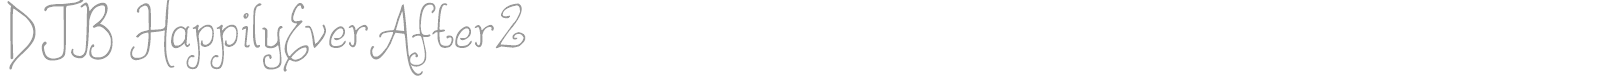 Font DJB Happily Ever After